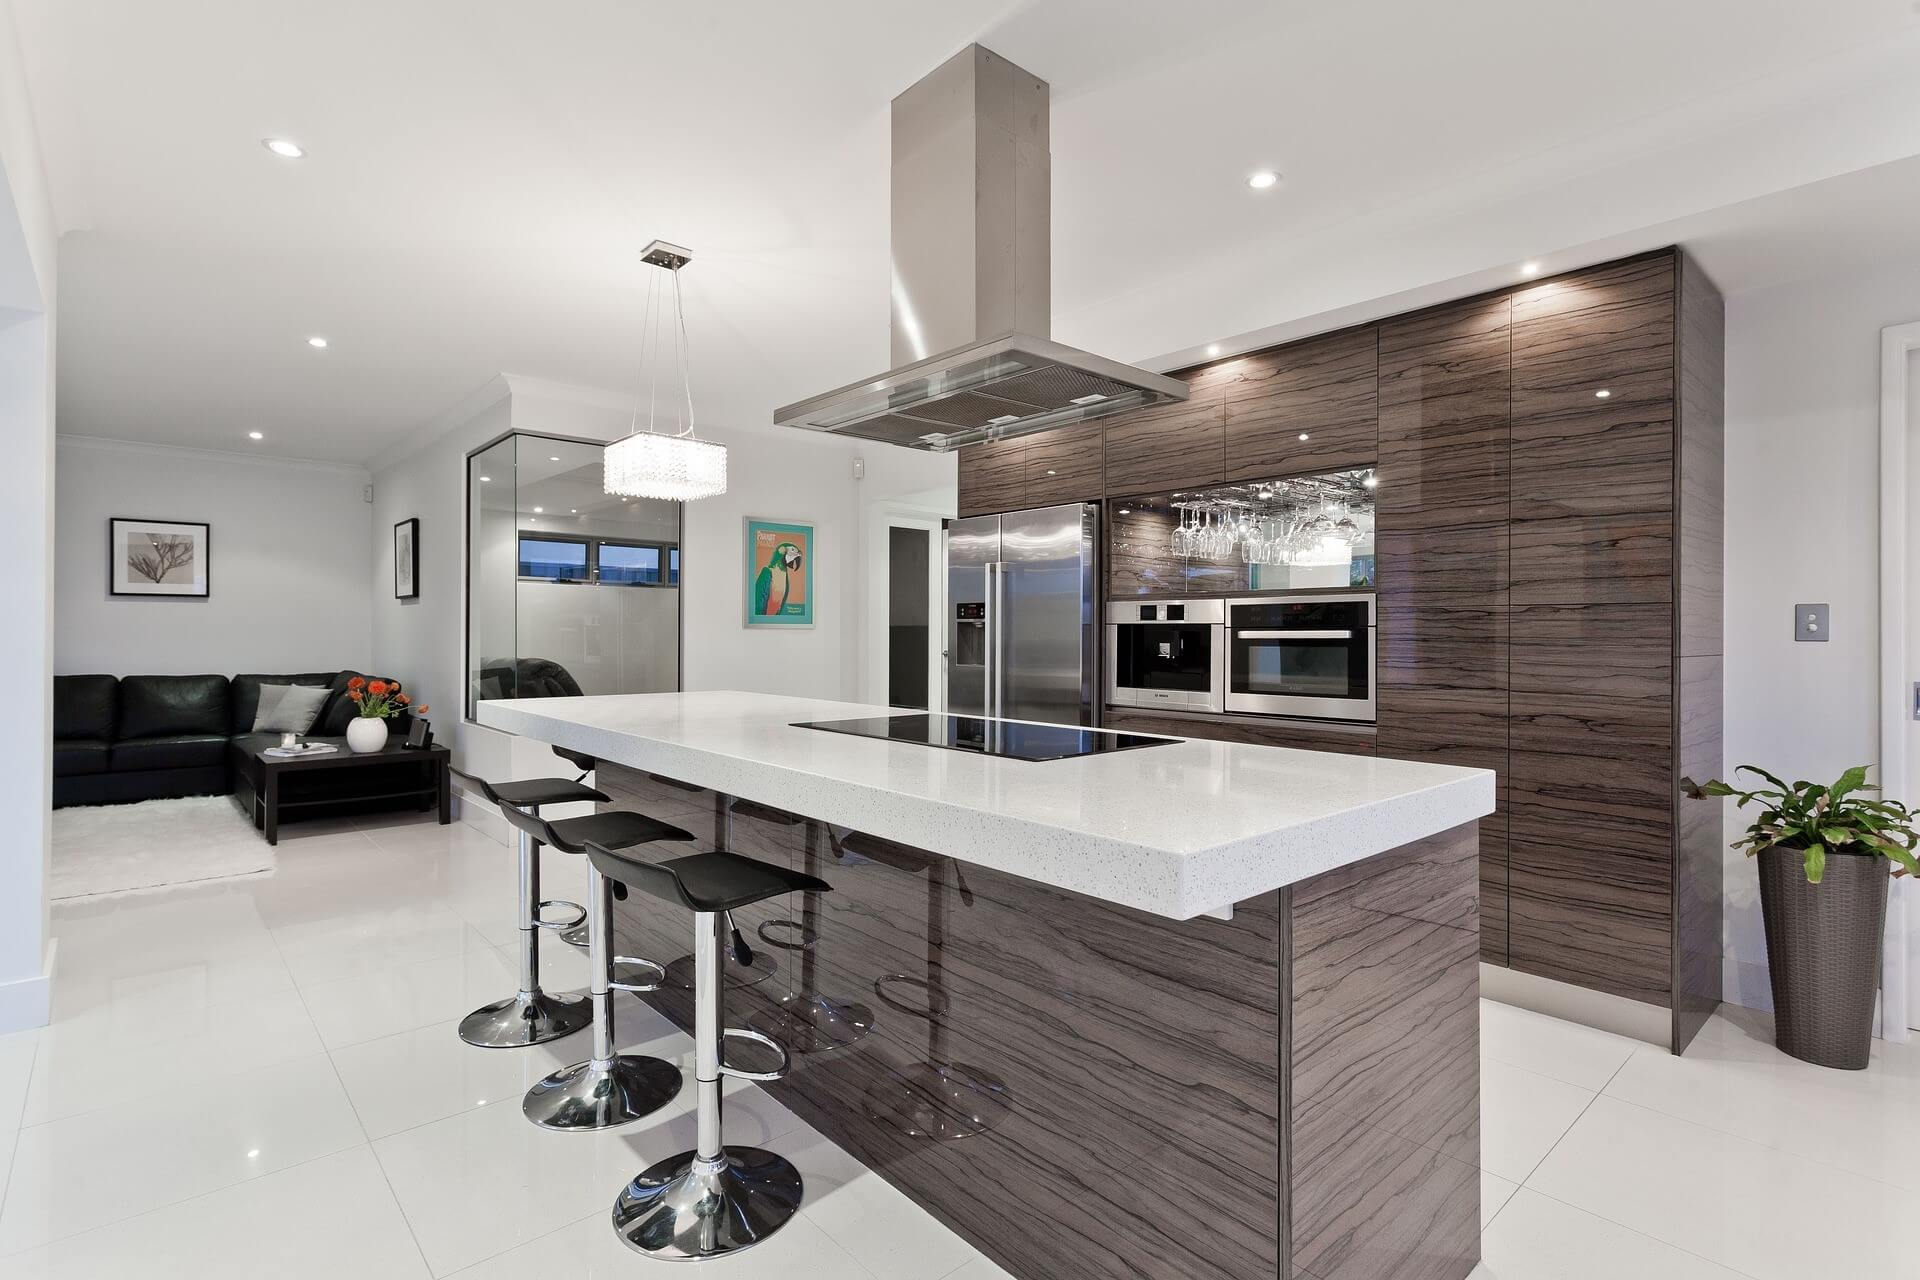 Luxurious open apartment kitchen design with island, high chairs, white tiling and a white and reflecting tree motif finish